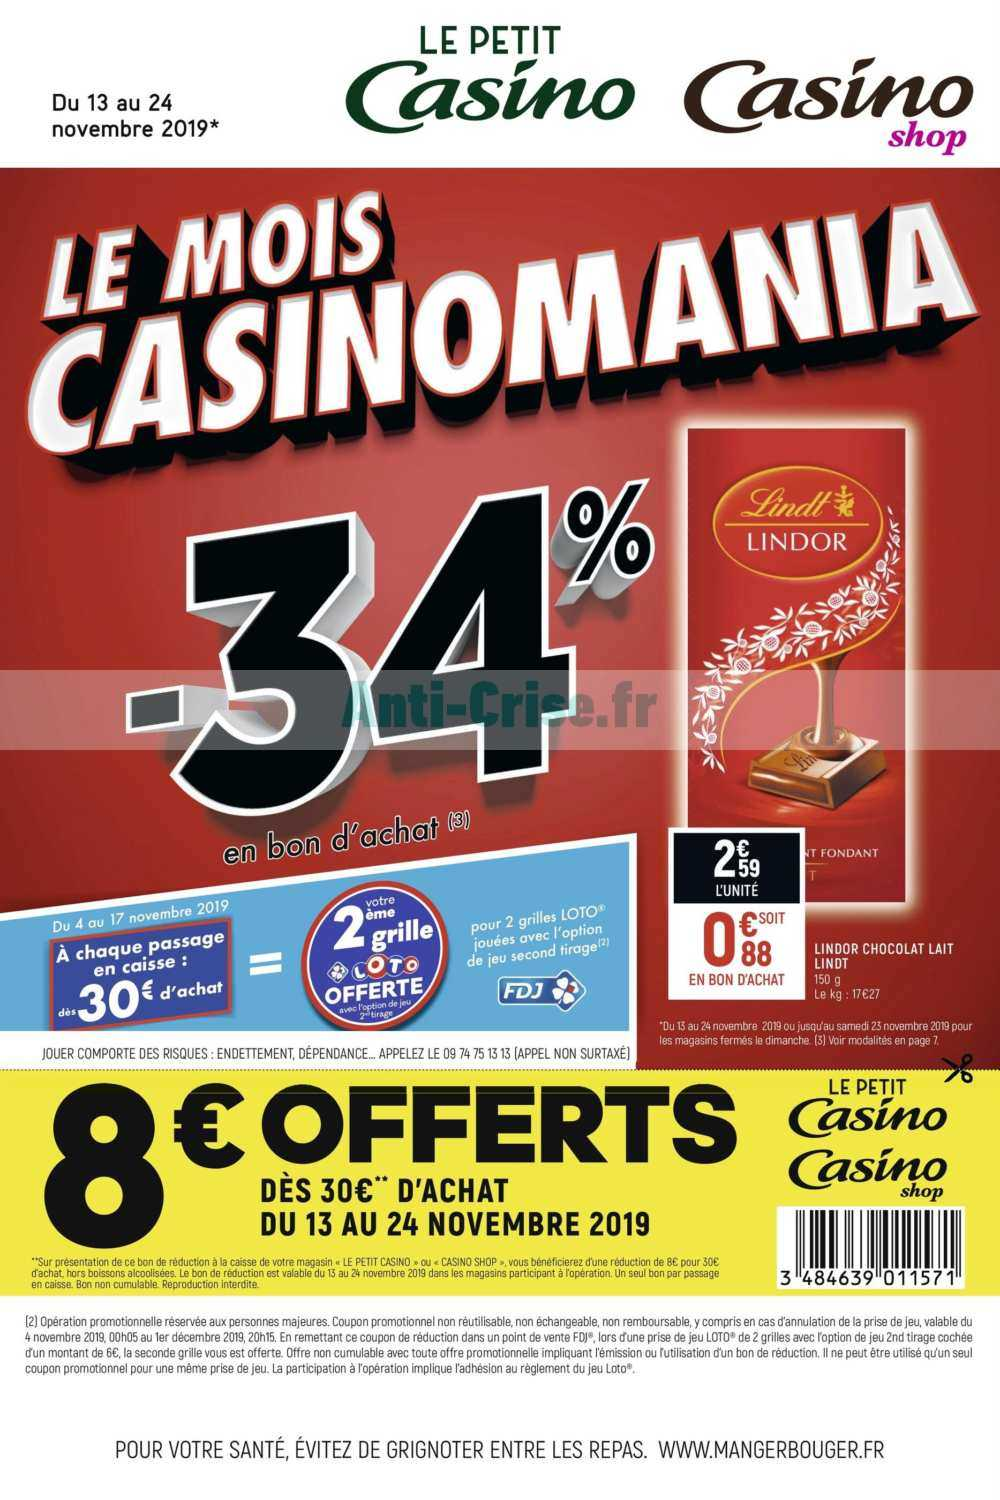 https://media.anti-crise.fr/2019/11/novembre2019casino-shop1311201924112019S0C0le-Mois-1-200x300.jpg